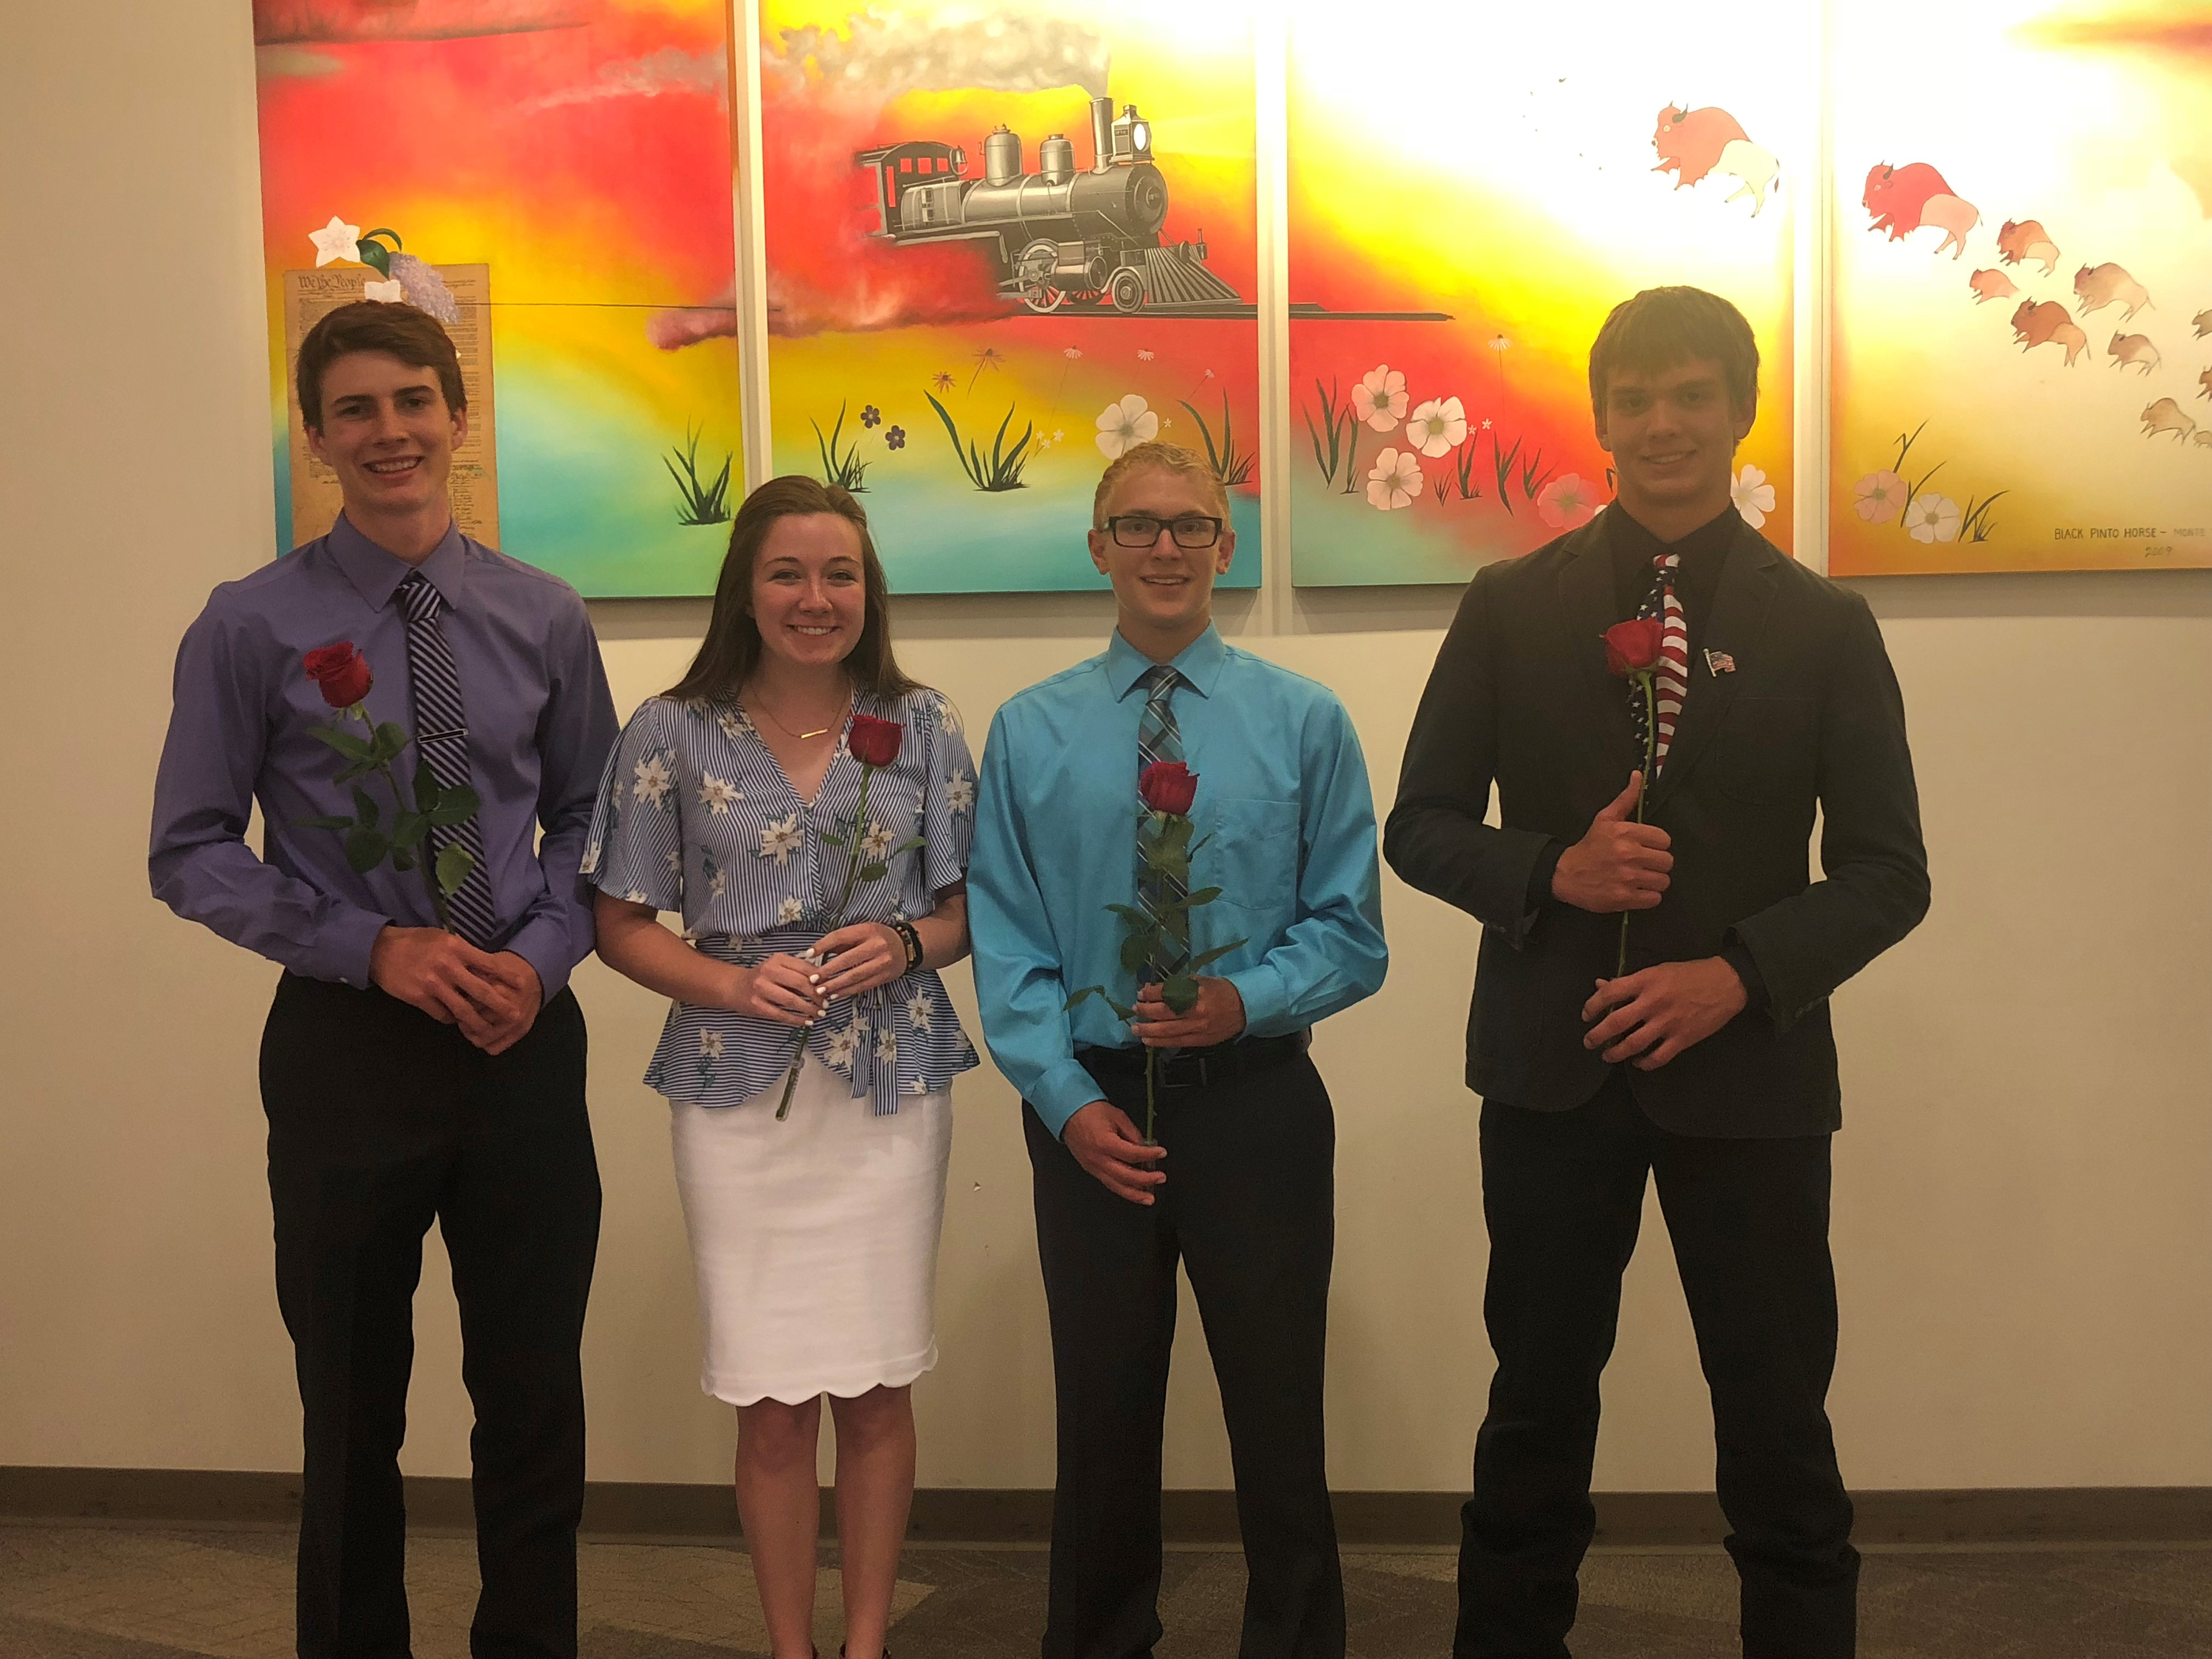 Four youth join the North Dakota 4-H Ambassador program. The new Ambassadors are (from left): Lucas Subart, Sophie Lind, Jacob Arnold and Mitch Stuber. (NDSU photo)